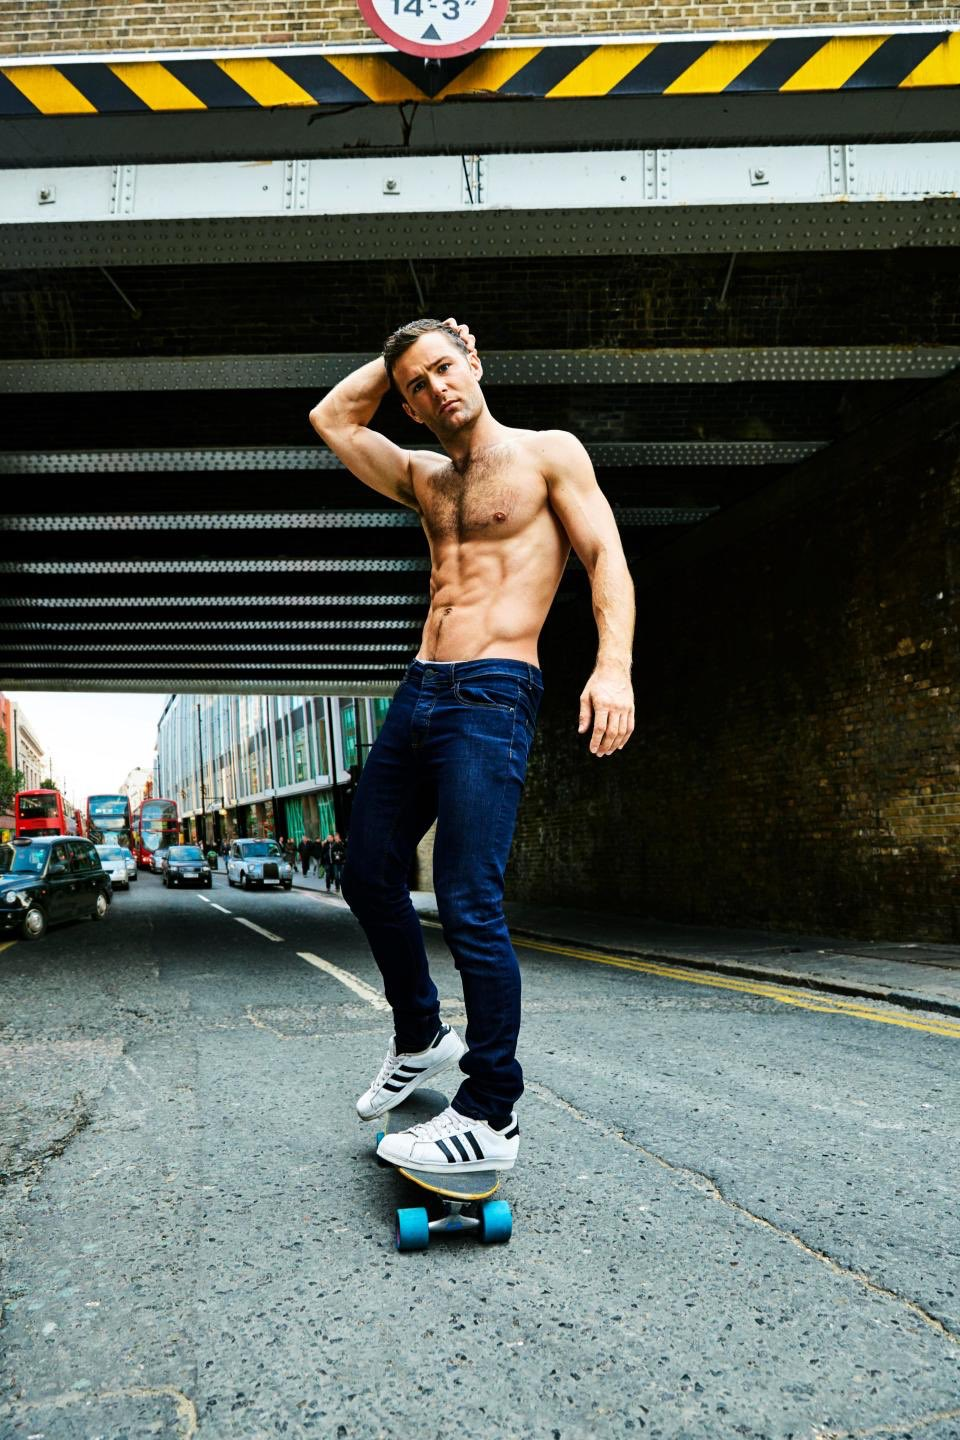 RT @simonjonespr: #GetFitGetHappy  @mcflyharry x @Fabulousmag Out today 📷 @hayman_mark https://t.co/cFD6YkTcPh